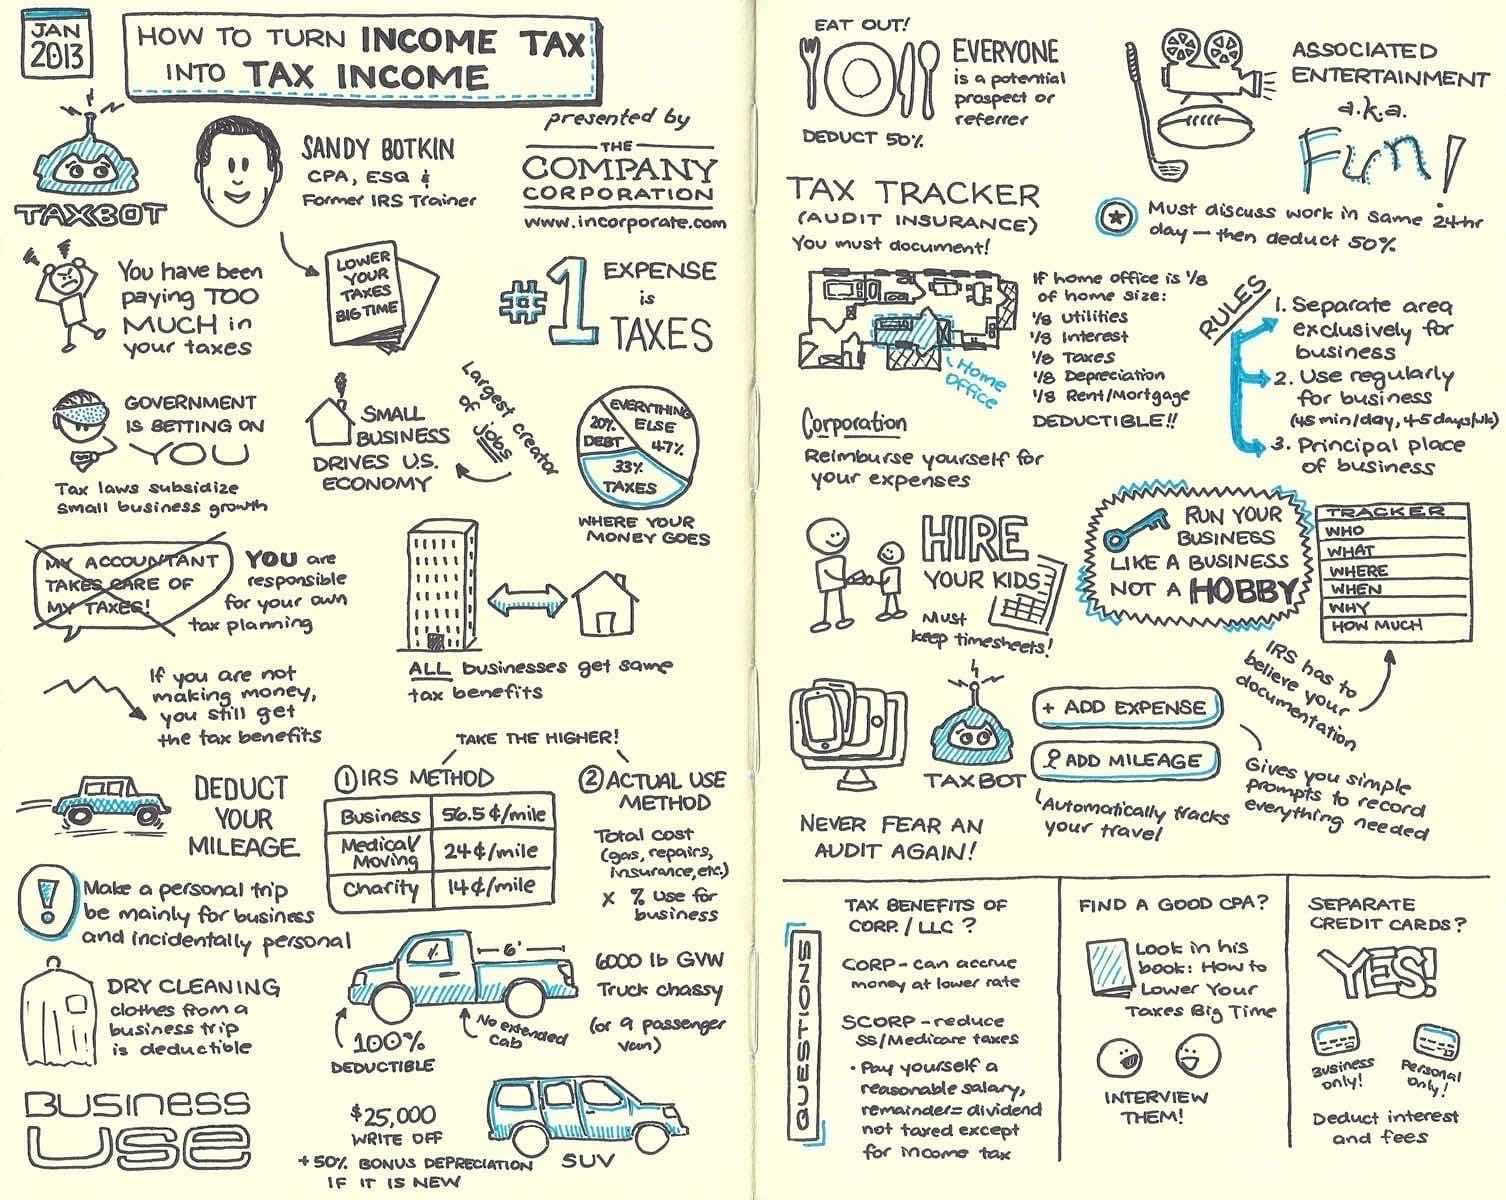 Sketchnotes for webinar by Incorporate.com and Taxbot